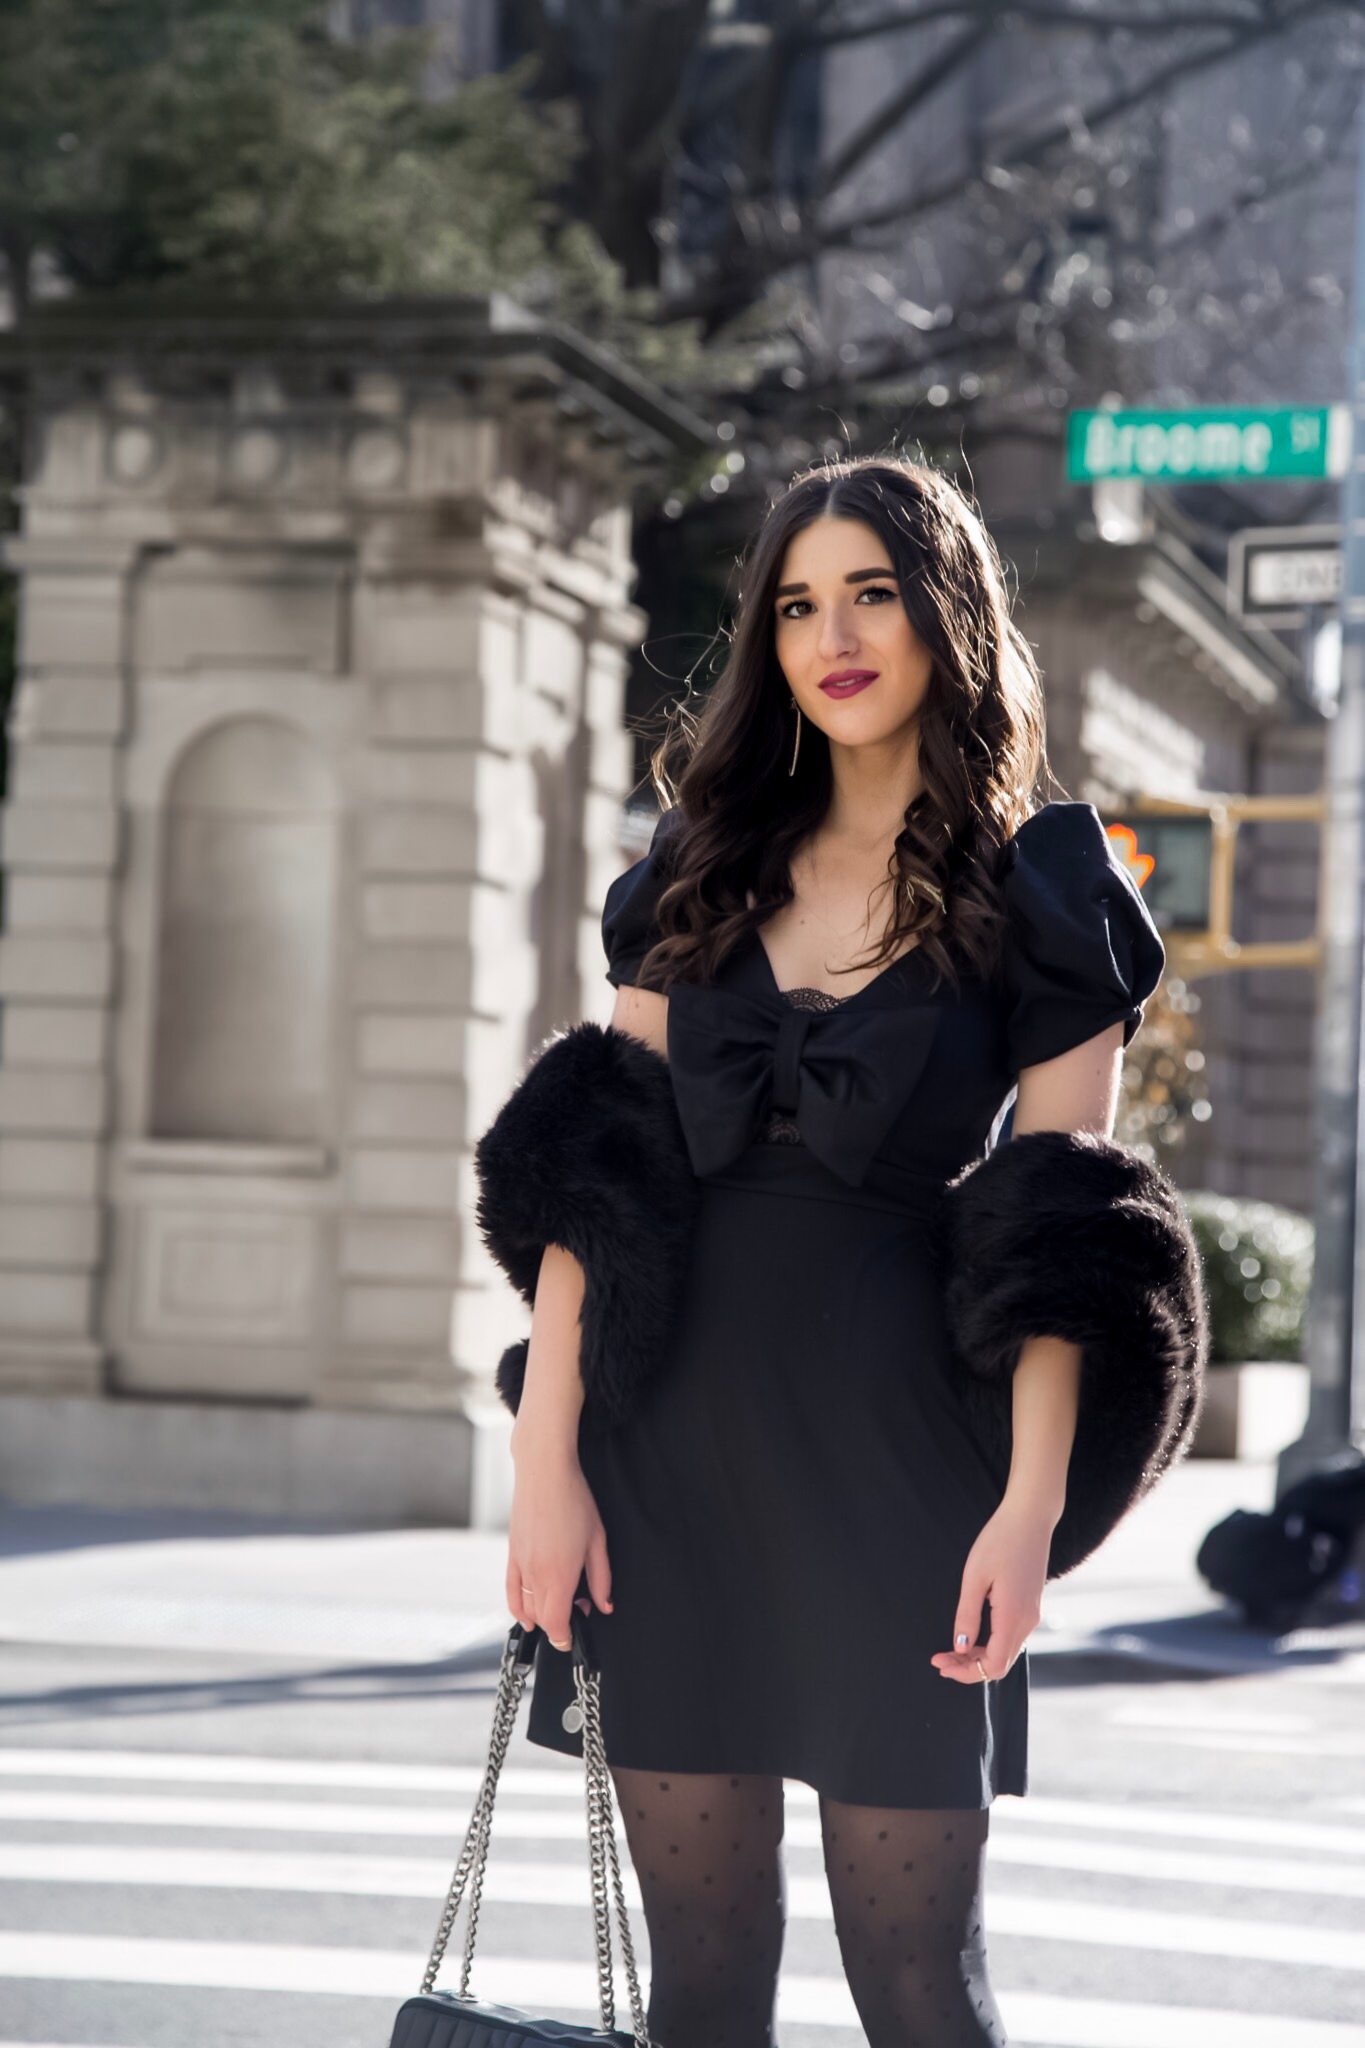 The Right Way To Ask For A Favor Black Bow Dress Polka Dot Tights Esther Santer Fashion Blog NYC Street Style Blogger Outfit OOTD Trendy ASOS Zara Fur Stole Druzy Earrings Bauble Bar Hair Girl Women Shoes Pointy Toe Booties Heels  Accessories  Winter.jpg